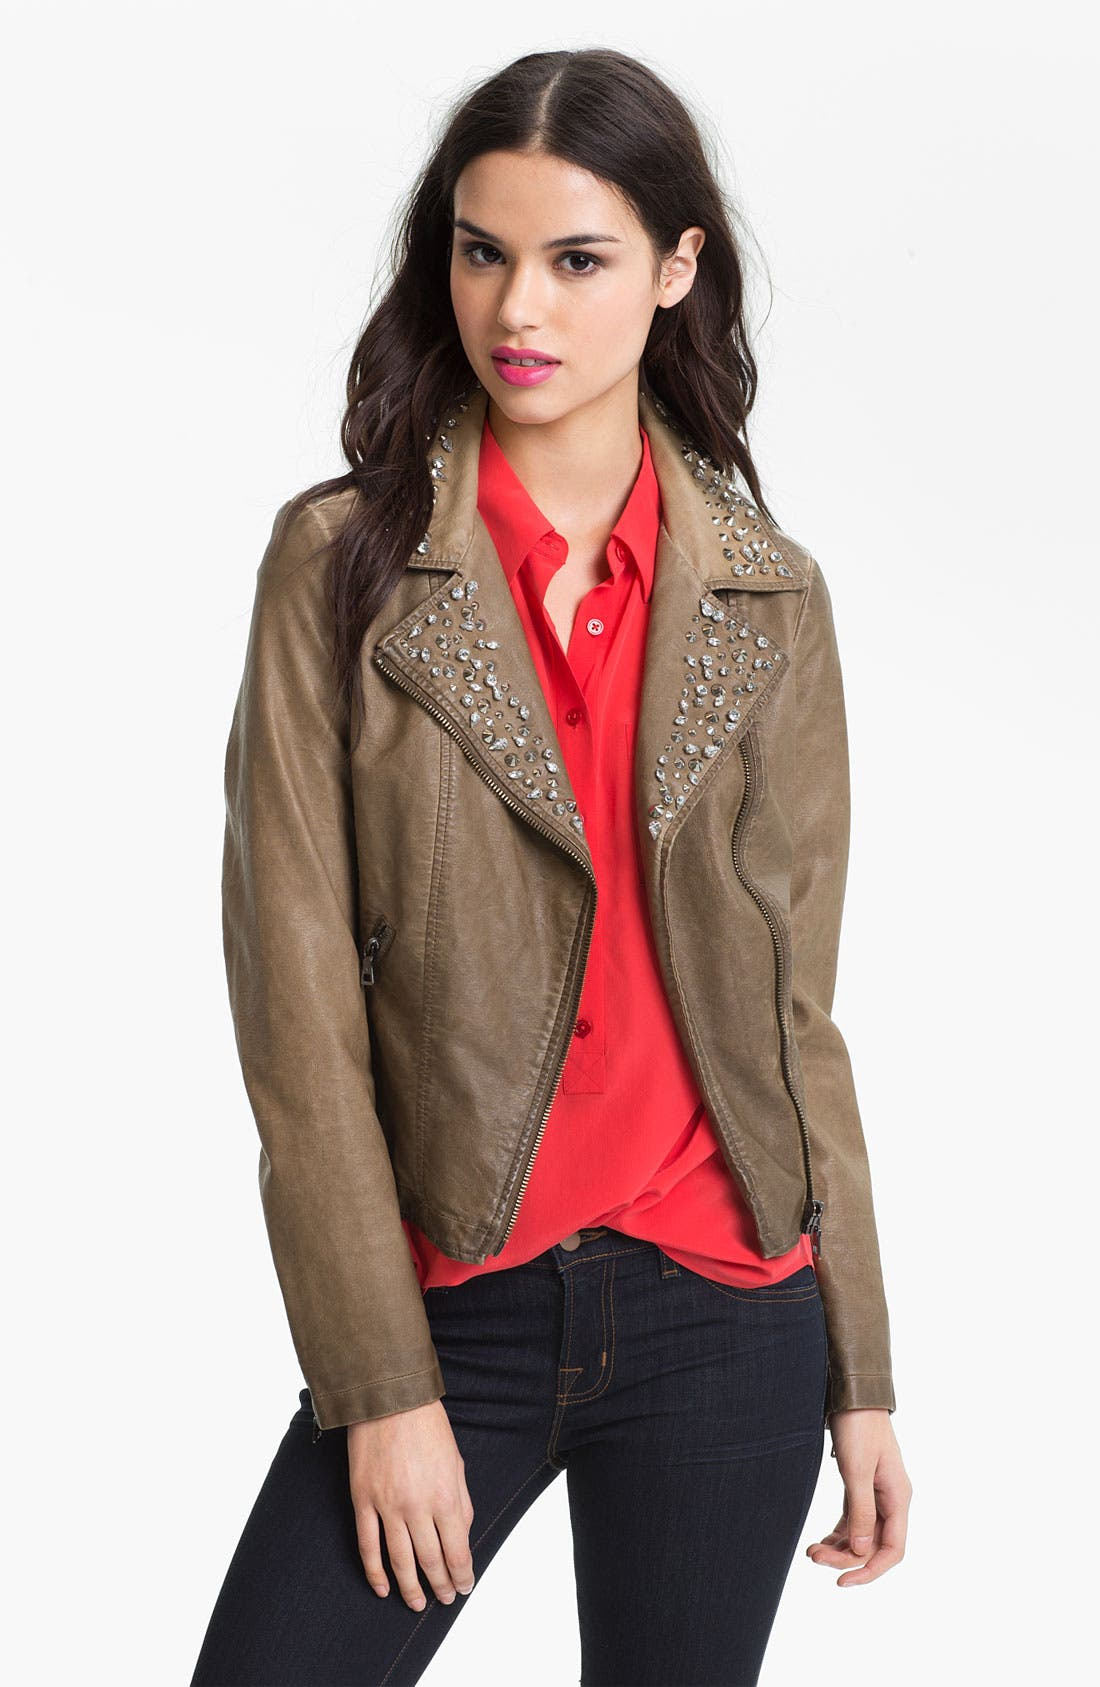 Alternate Image 1 Selected - Sam Edelman Cutaway Back Studded Faux Leather Jacket